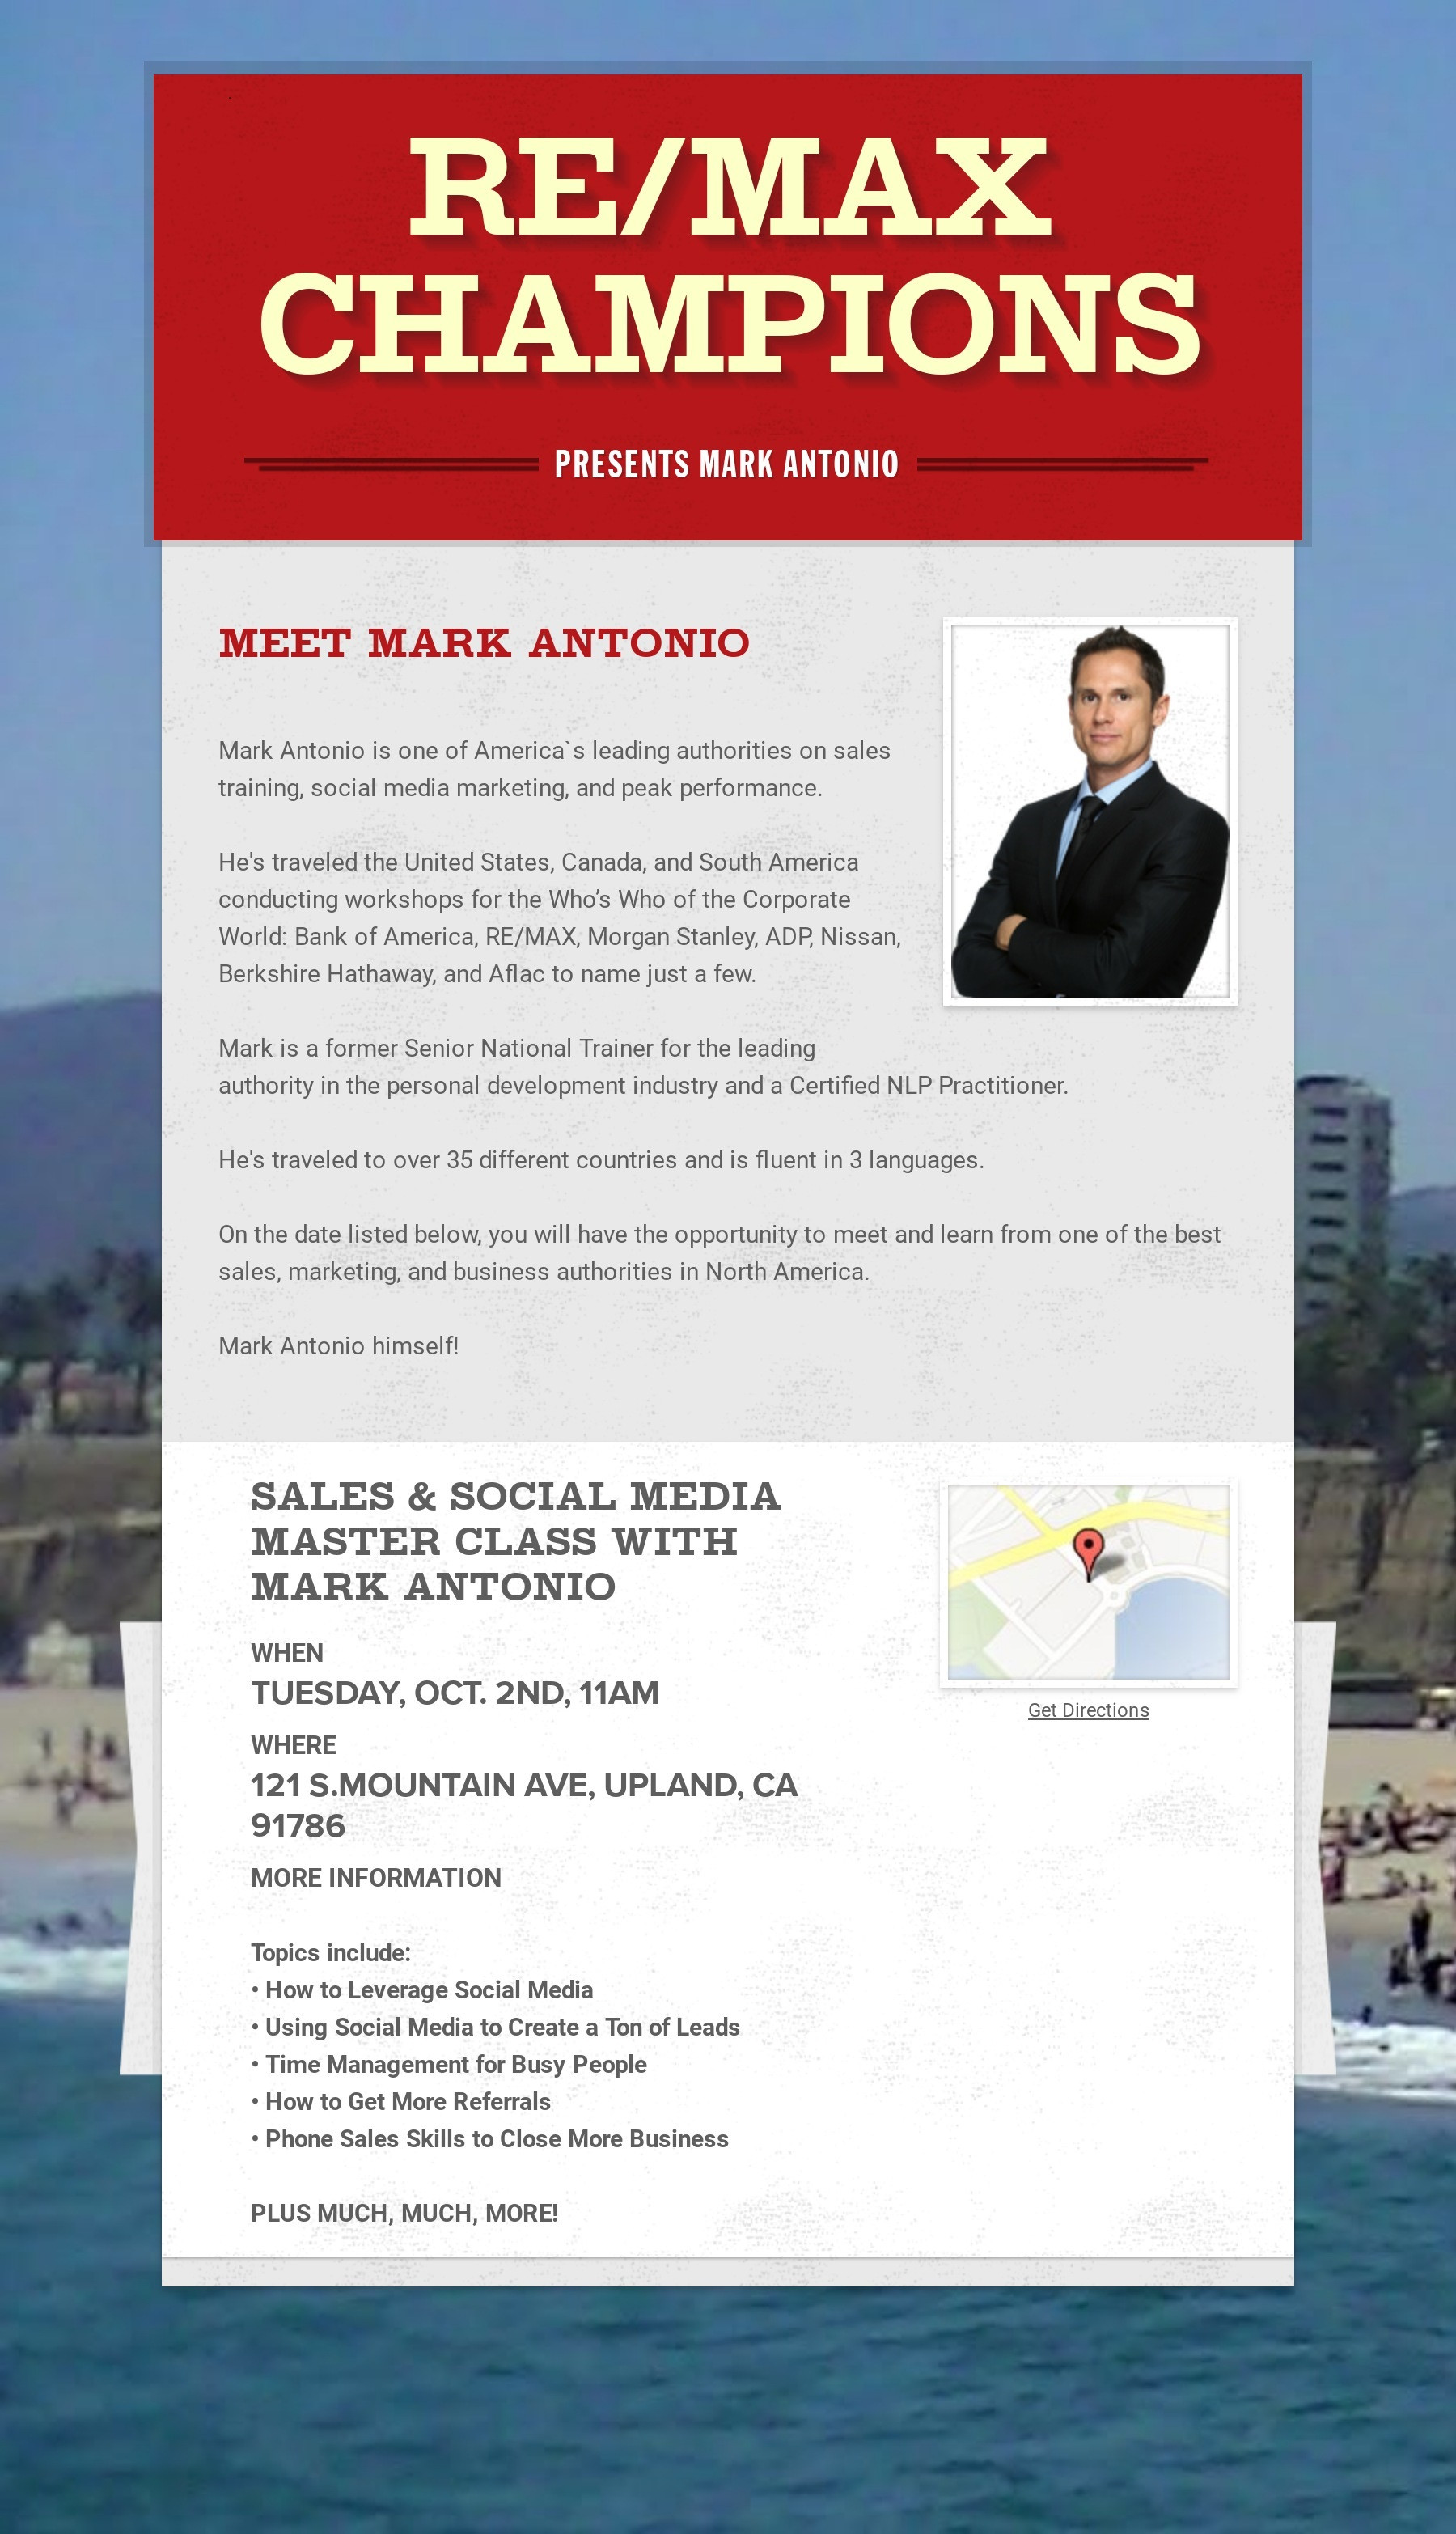 Sales & Social Media Master Class with Mark Antonio